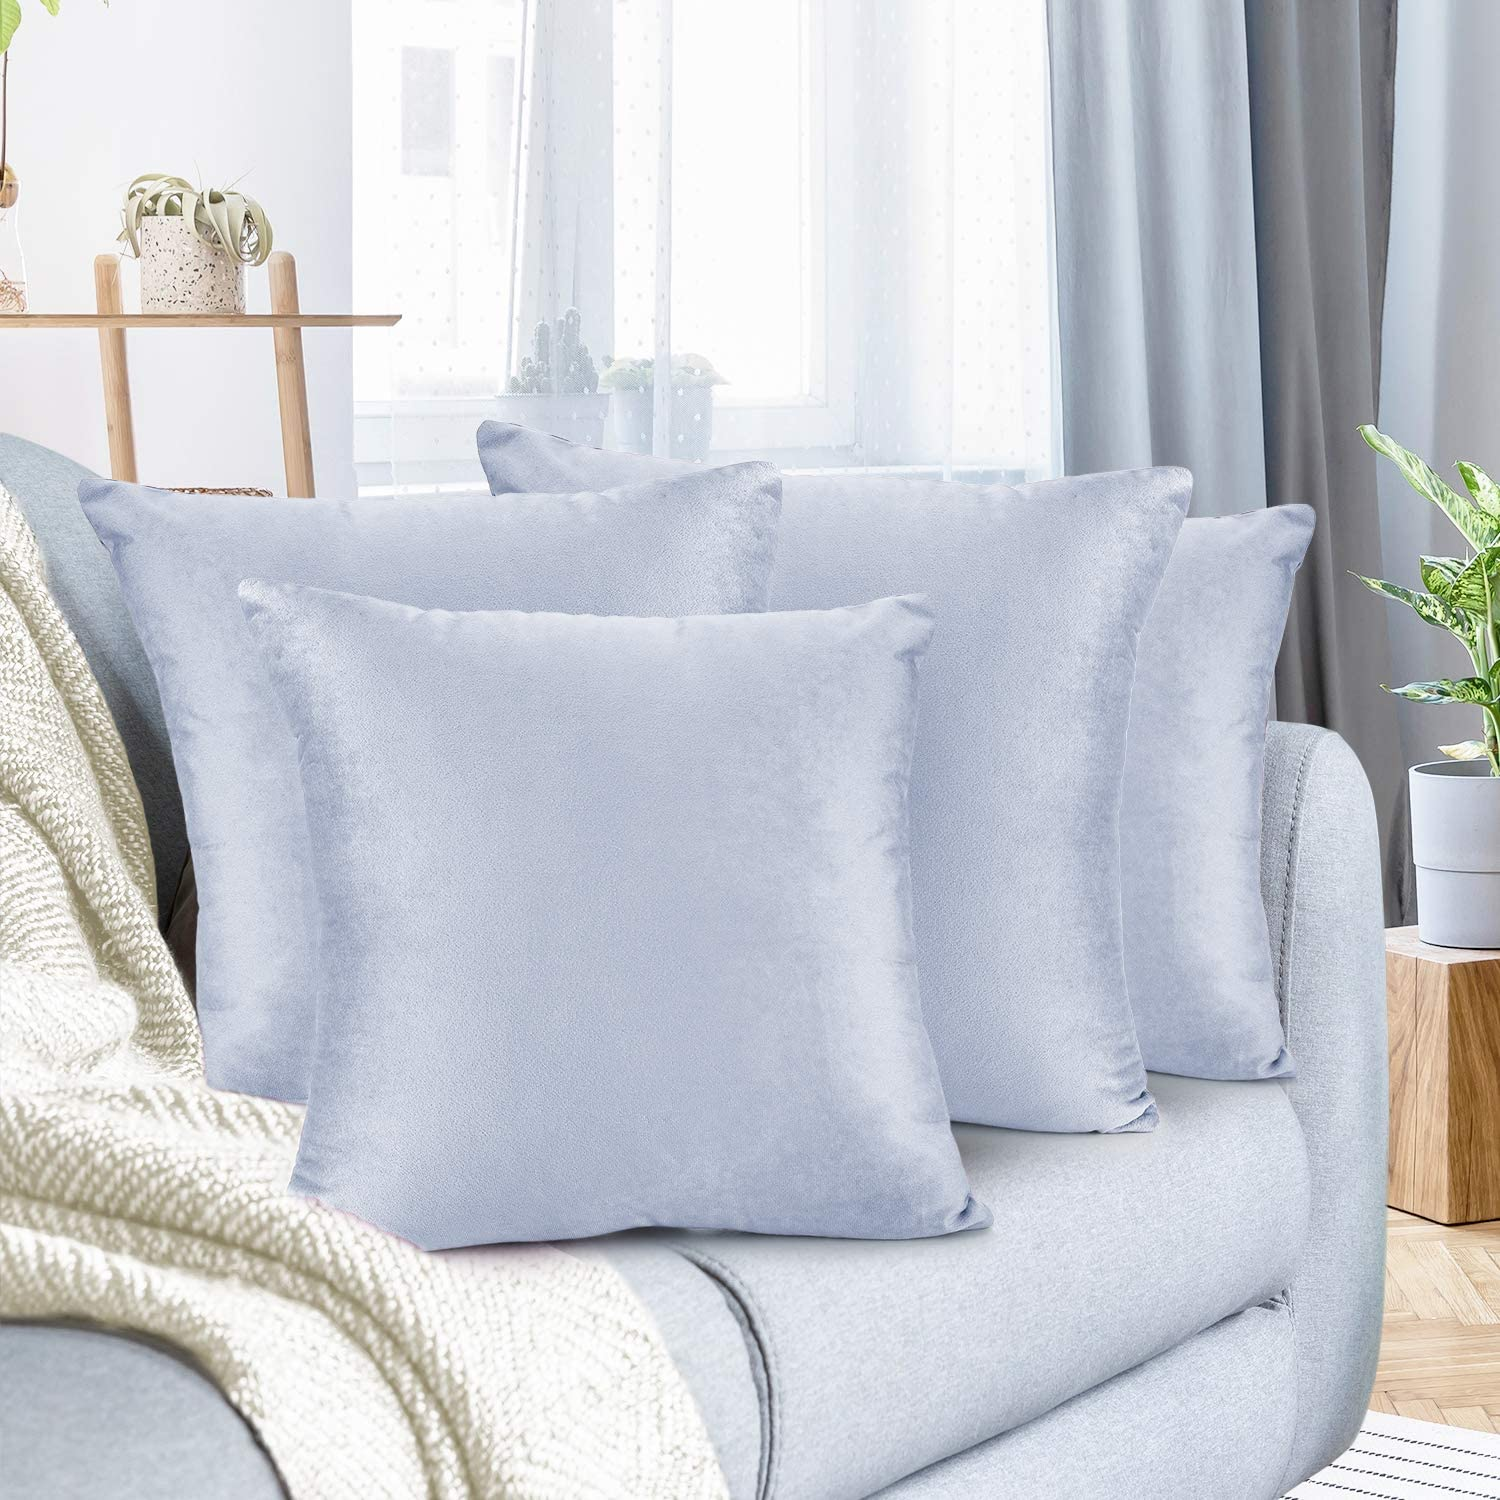 """Nestl Bedding Throw Pillow Cover 18"""" x 18"""" Soft Square Decorative Throw Pillow Covers Cozy Velvet Cushion Case for Sofa Couch Bedroom, Set of 4, Ice Blue"""